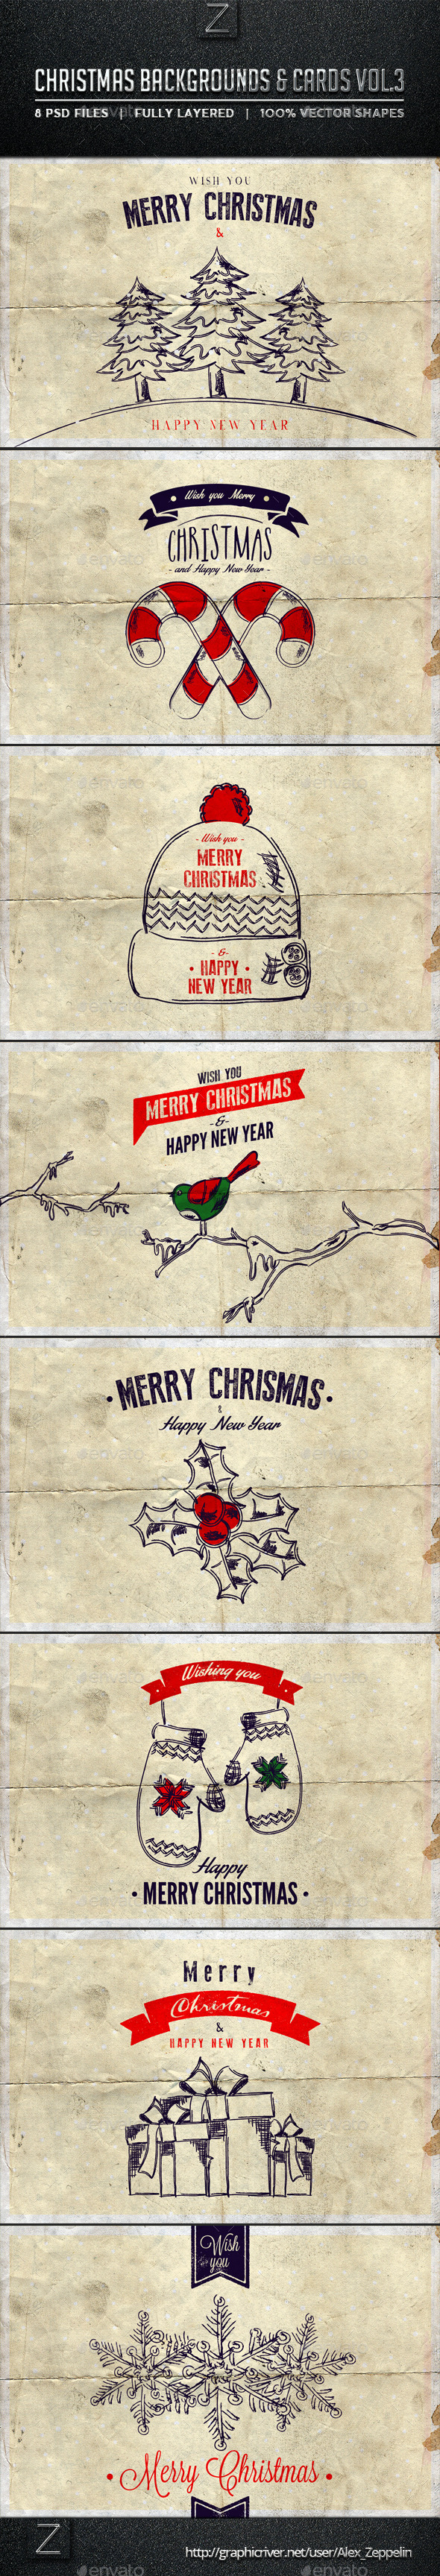 Christmas Backgrounds and Cards Vol.3 - Product Mock-Ups Graphics